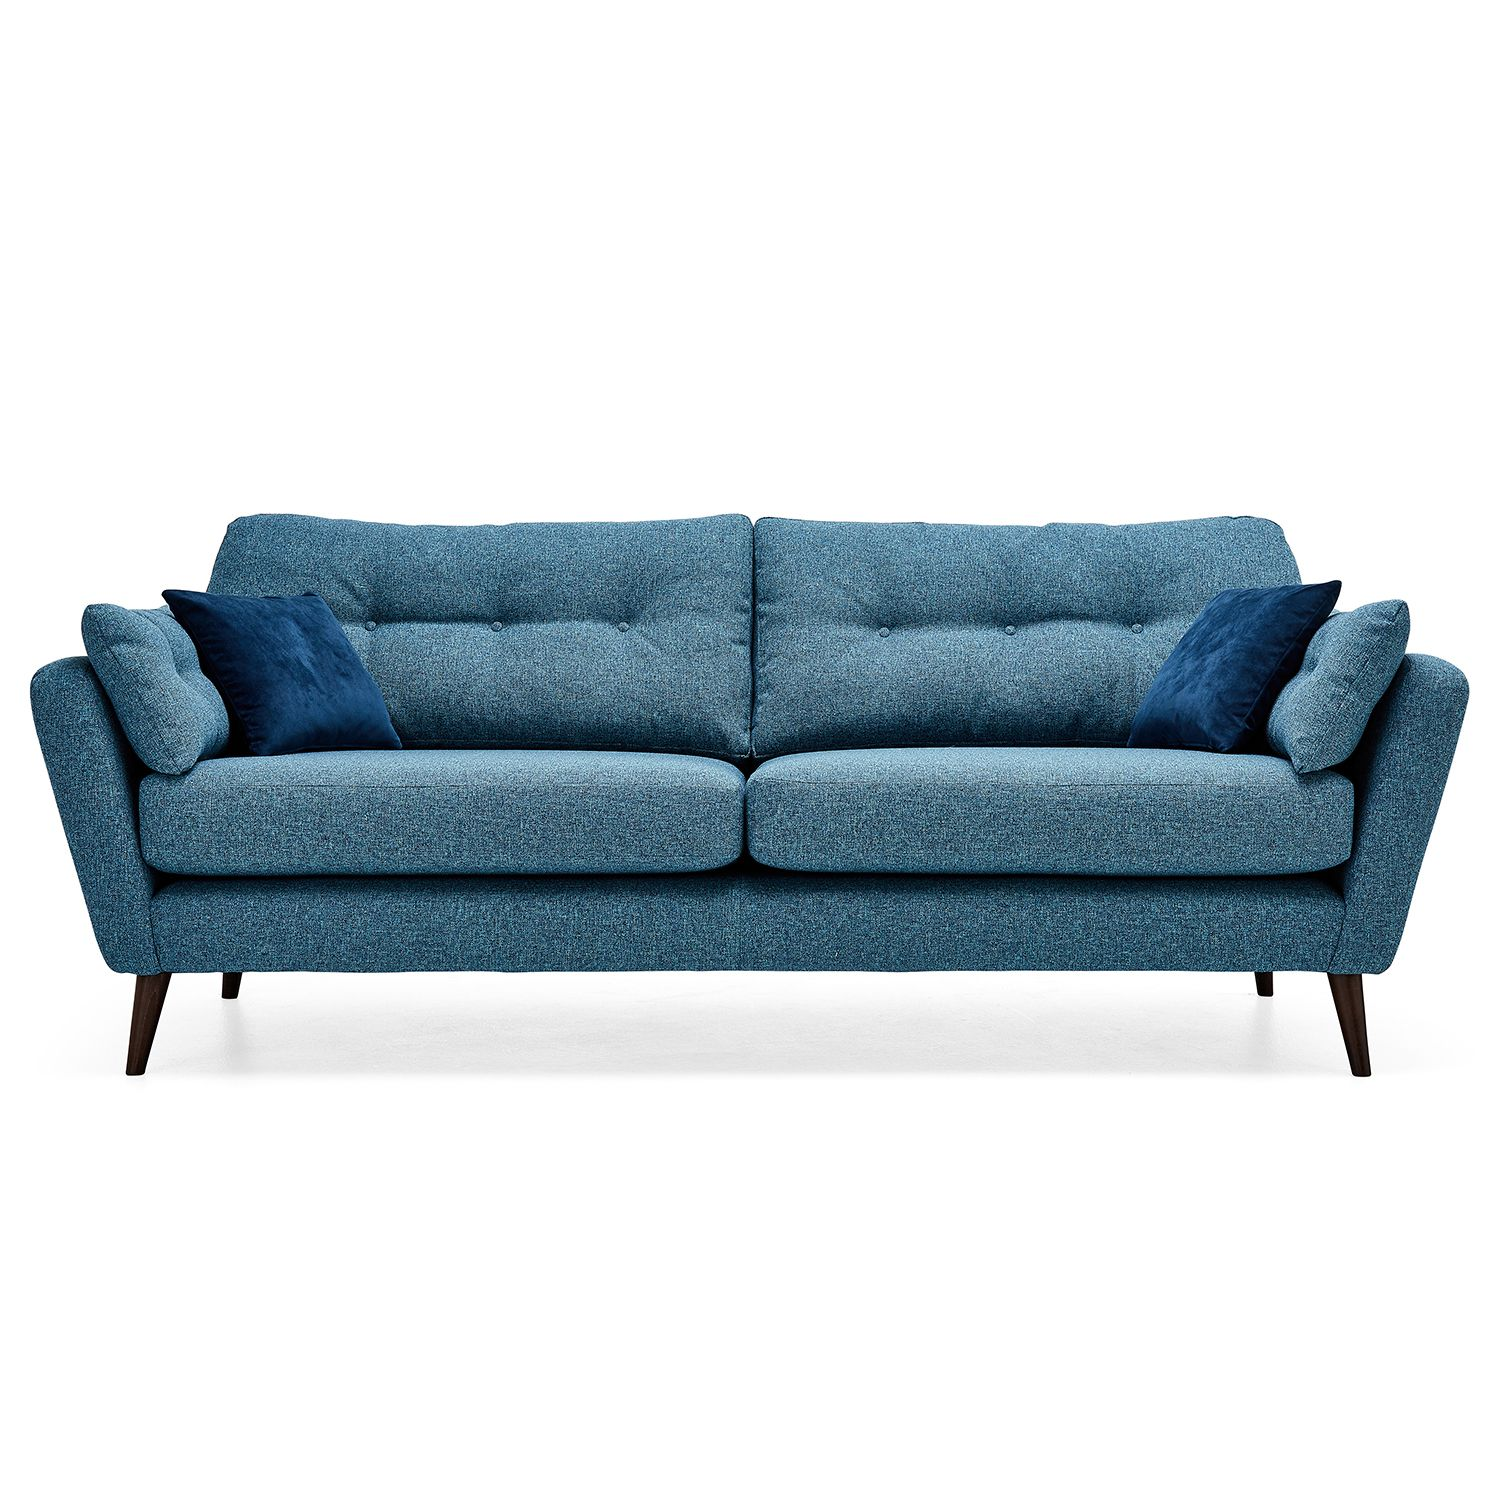 Granada 4 Seater Sofa Next Day Delivery Granada 4 Seater Sofa From Worldstores Everything For The Home Sofa Sofa Next Teal Sofa